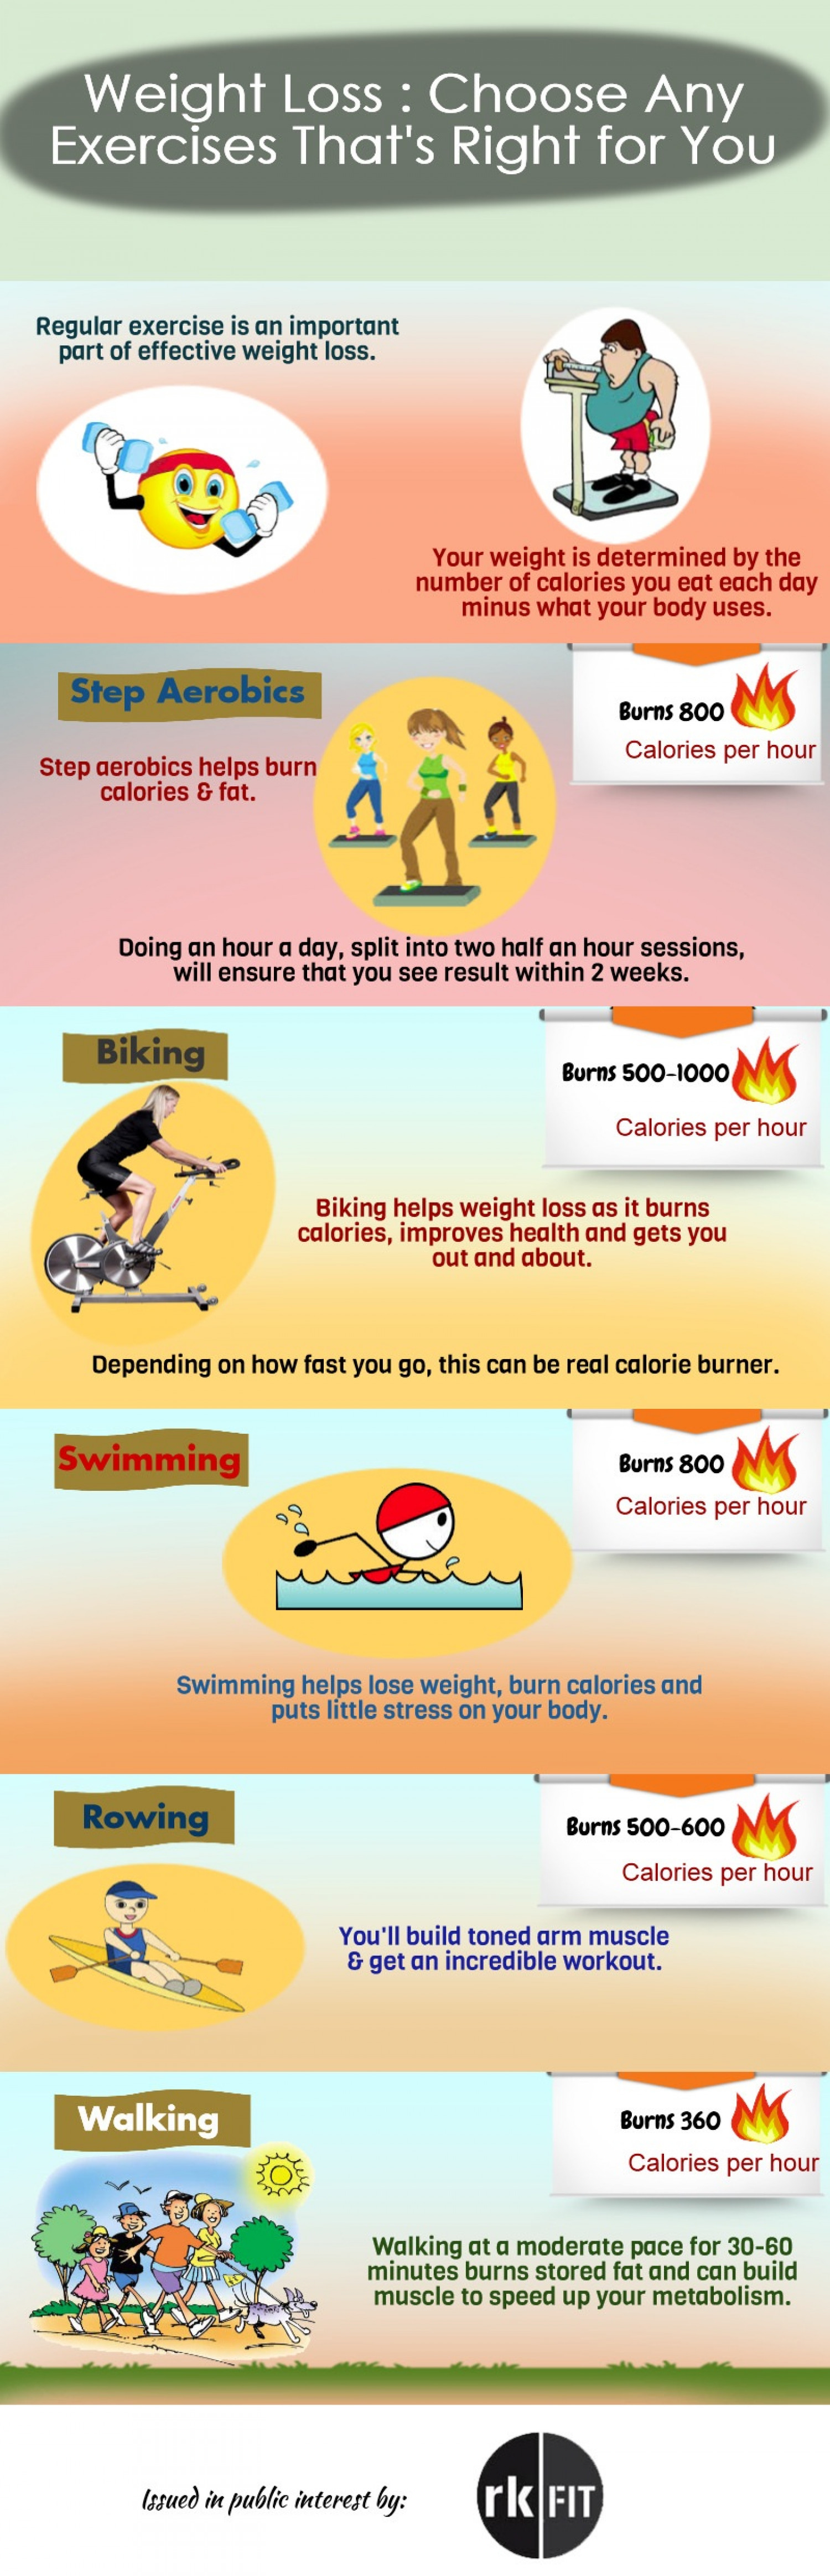 Weight Loss: Choose any Exercises that's right for You Infographic